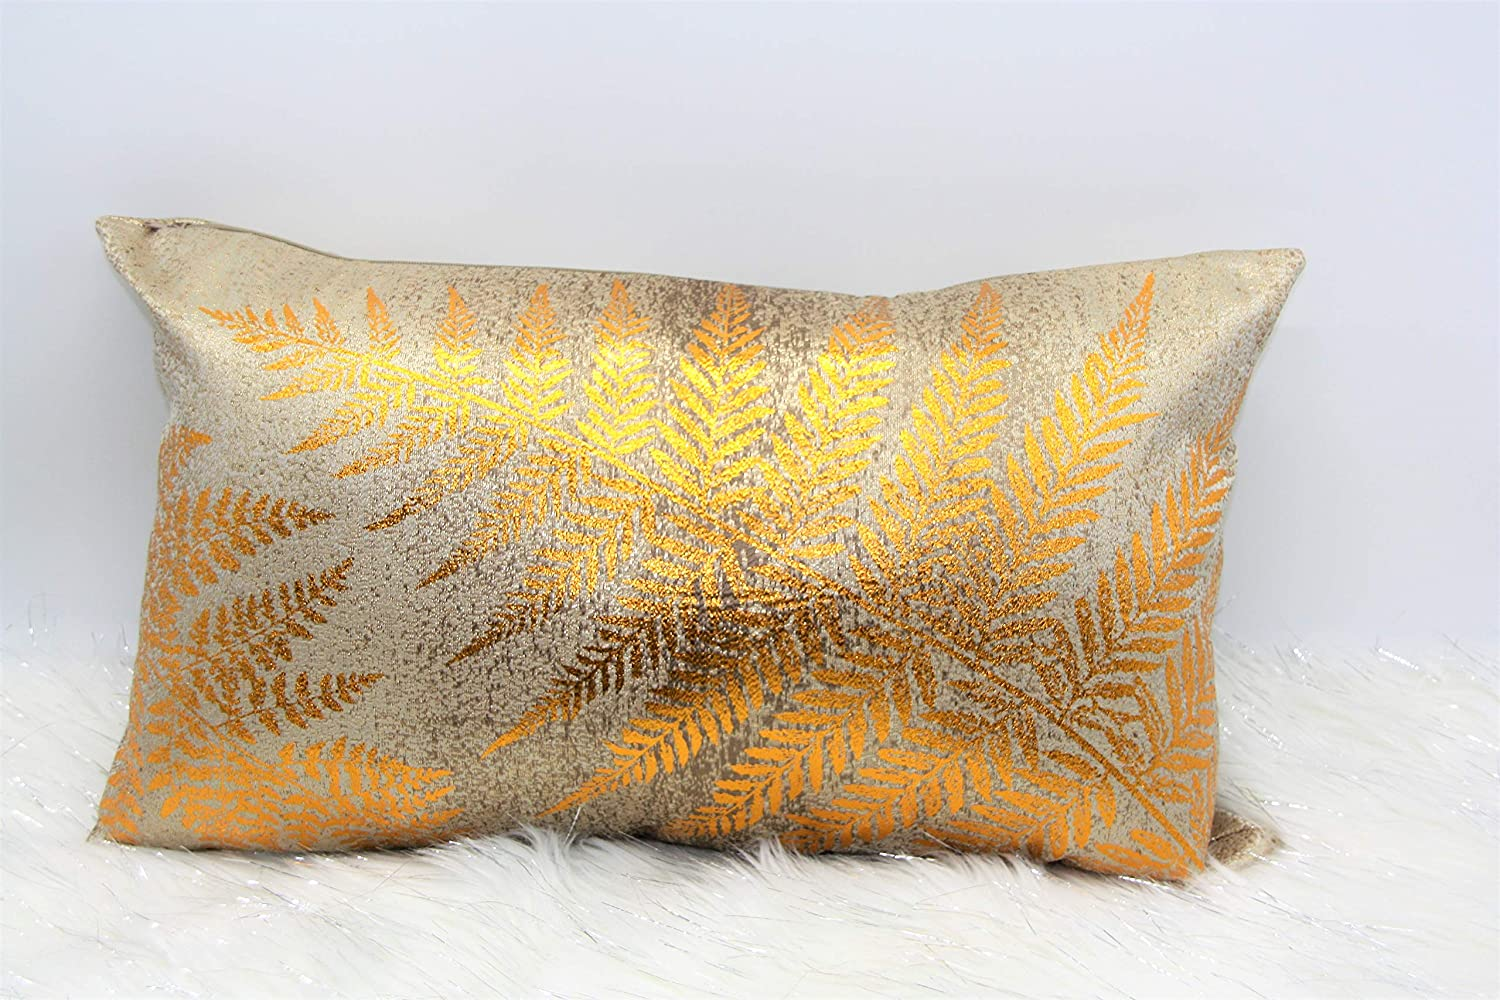 Amazon Com Contempo Lifestyles Gold Metallic Throw Pillow 12 X 20 Gold Shiny Tropical Lumbar Rectangle Cozy Couch Sofa Bedroom Living Car Leaf Design Gold Holiday Throw Pillows Home Kitchen